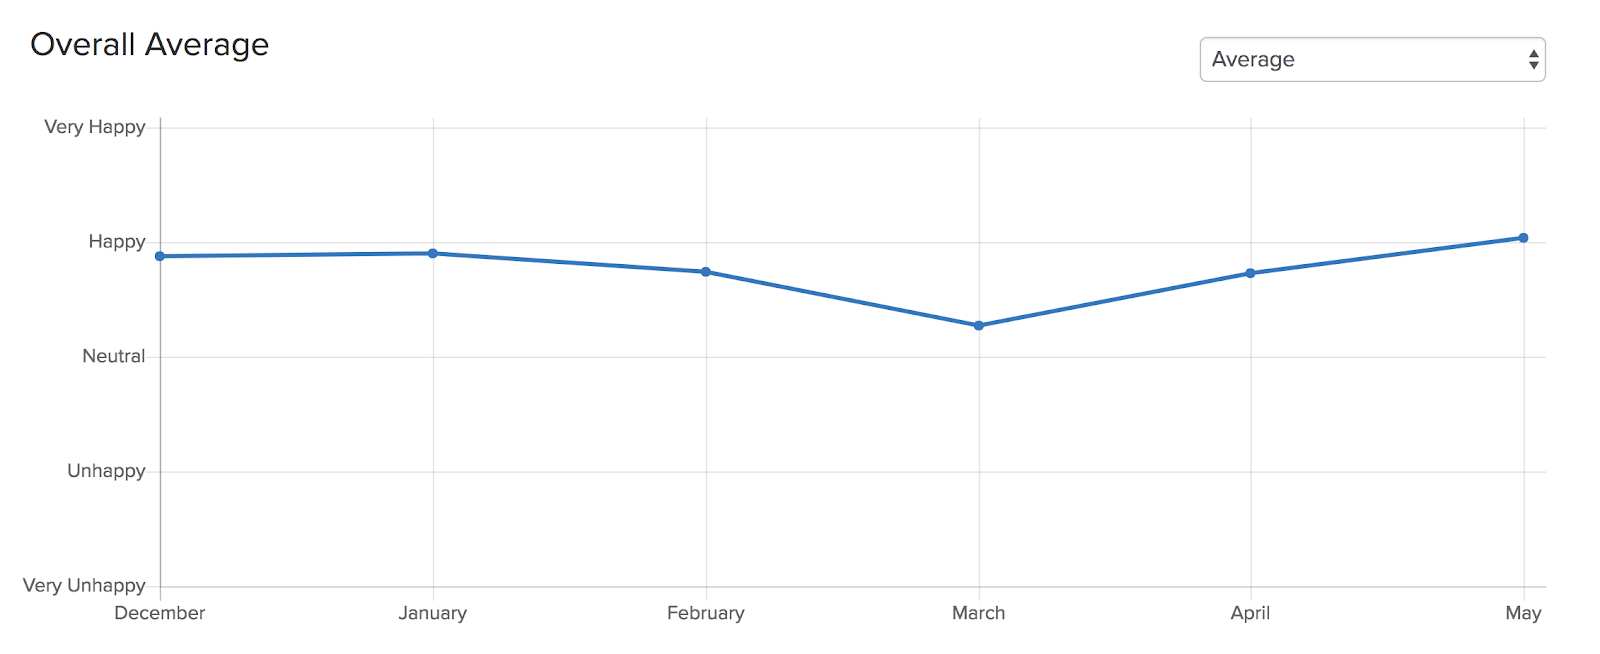 growing agency low happiness in March